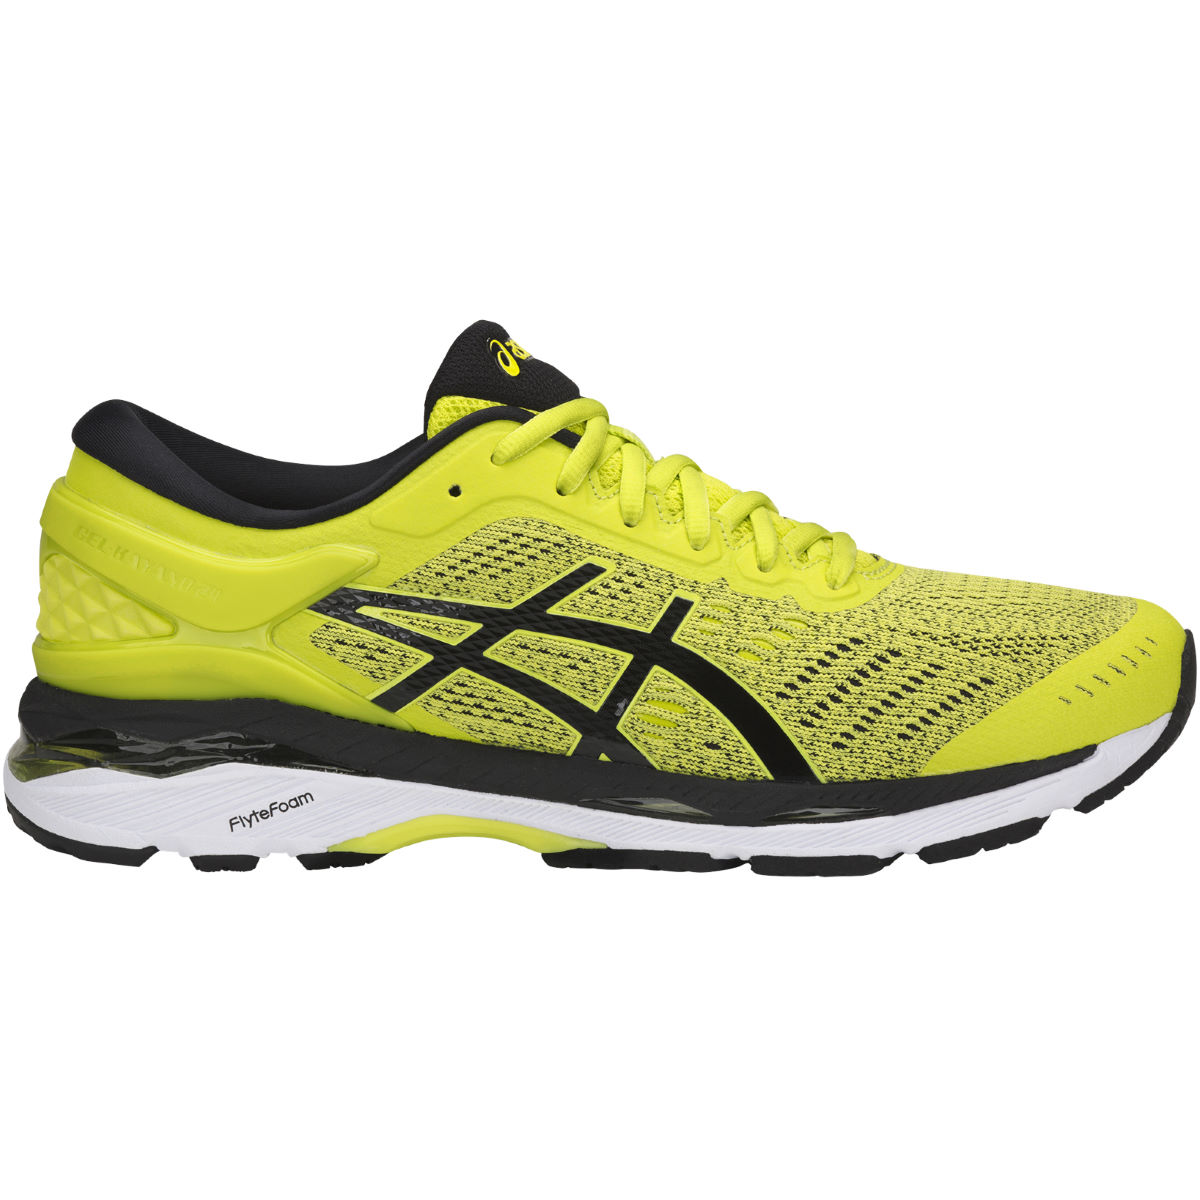 Chaussures Asics Kayano 24 - UK 7 SULPHUR SPRING/BLACK